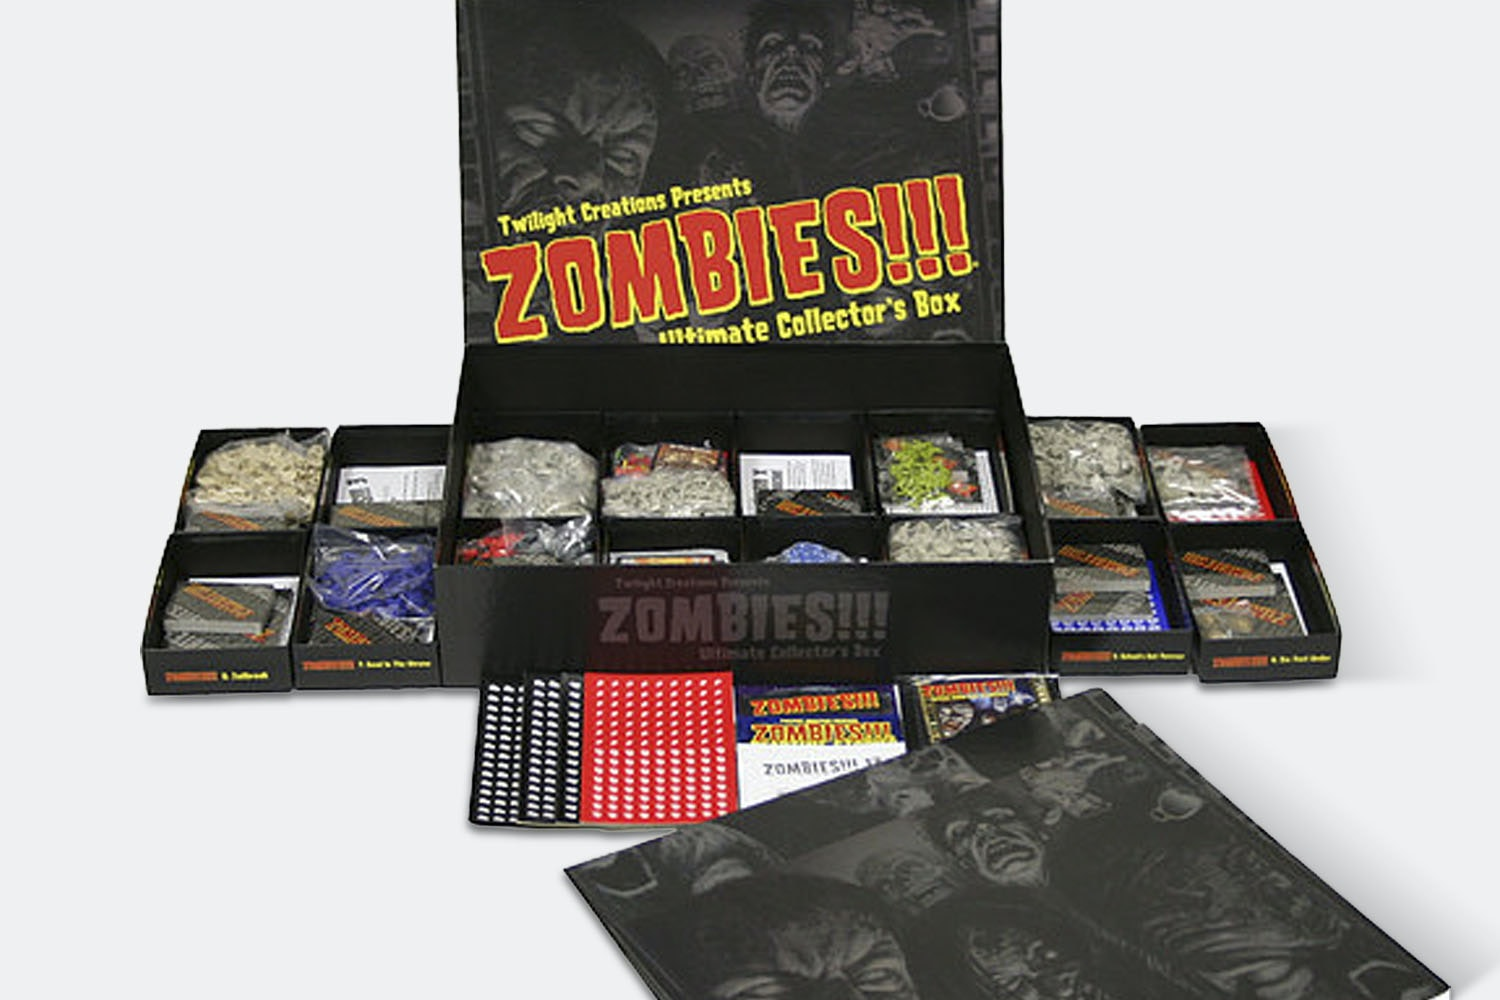 Zombies!!! Ultimate Collector's Box